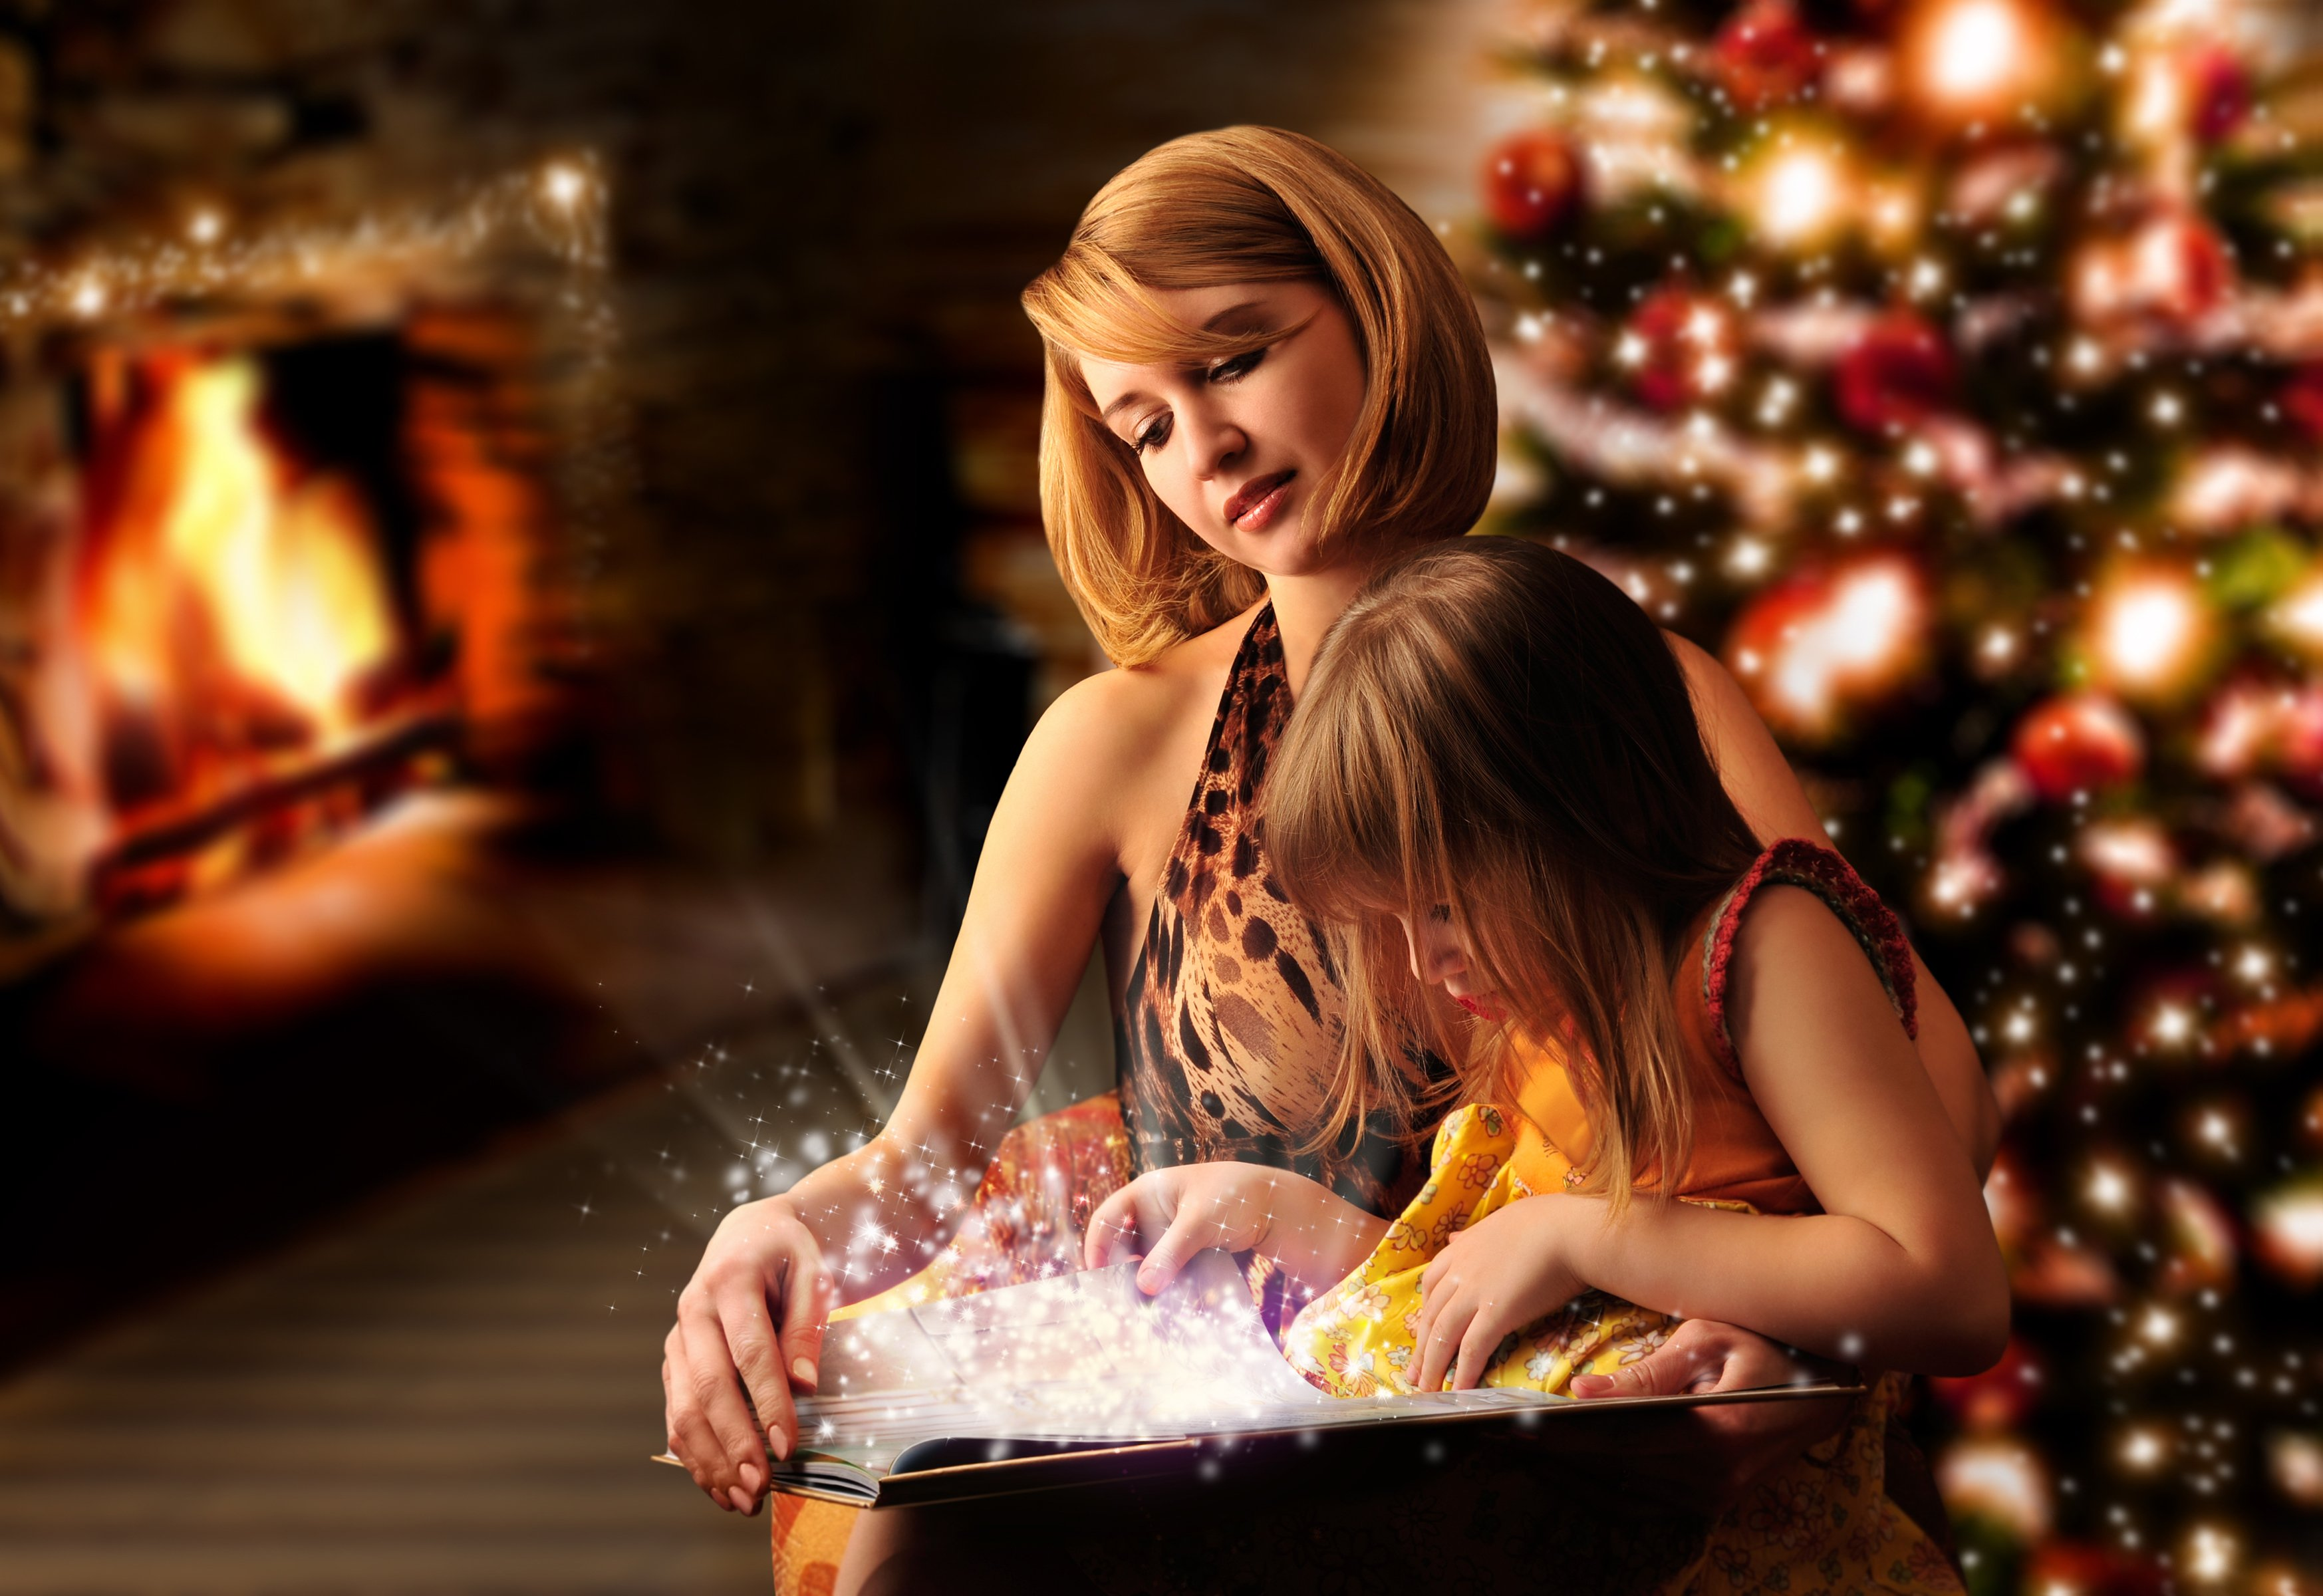 How to Make Christmas More Memorable for Your Family? Are you feeling the pressure to create a perfect holiday for your children? Here are easy and fun activities that you and your kids will love, minus the overwhelm. #christmas #familyfun #makingmemories #funmom #simpleChristmas #Christmasfamilyfun #family #christmasfamilytime #thisarethemoment #funfamilytime #makingmemoriestogether #slowandsimpledays #creativemommy #handsonlearning